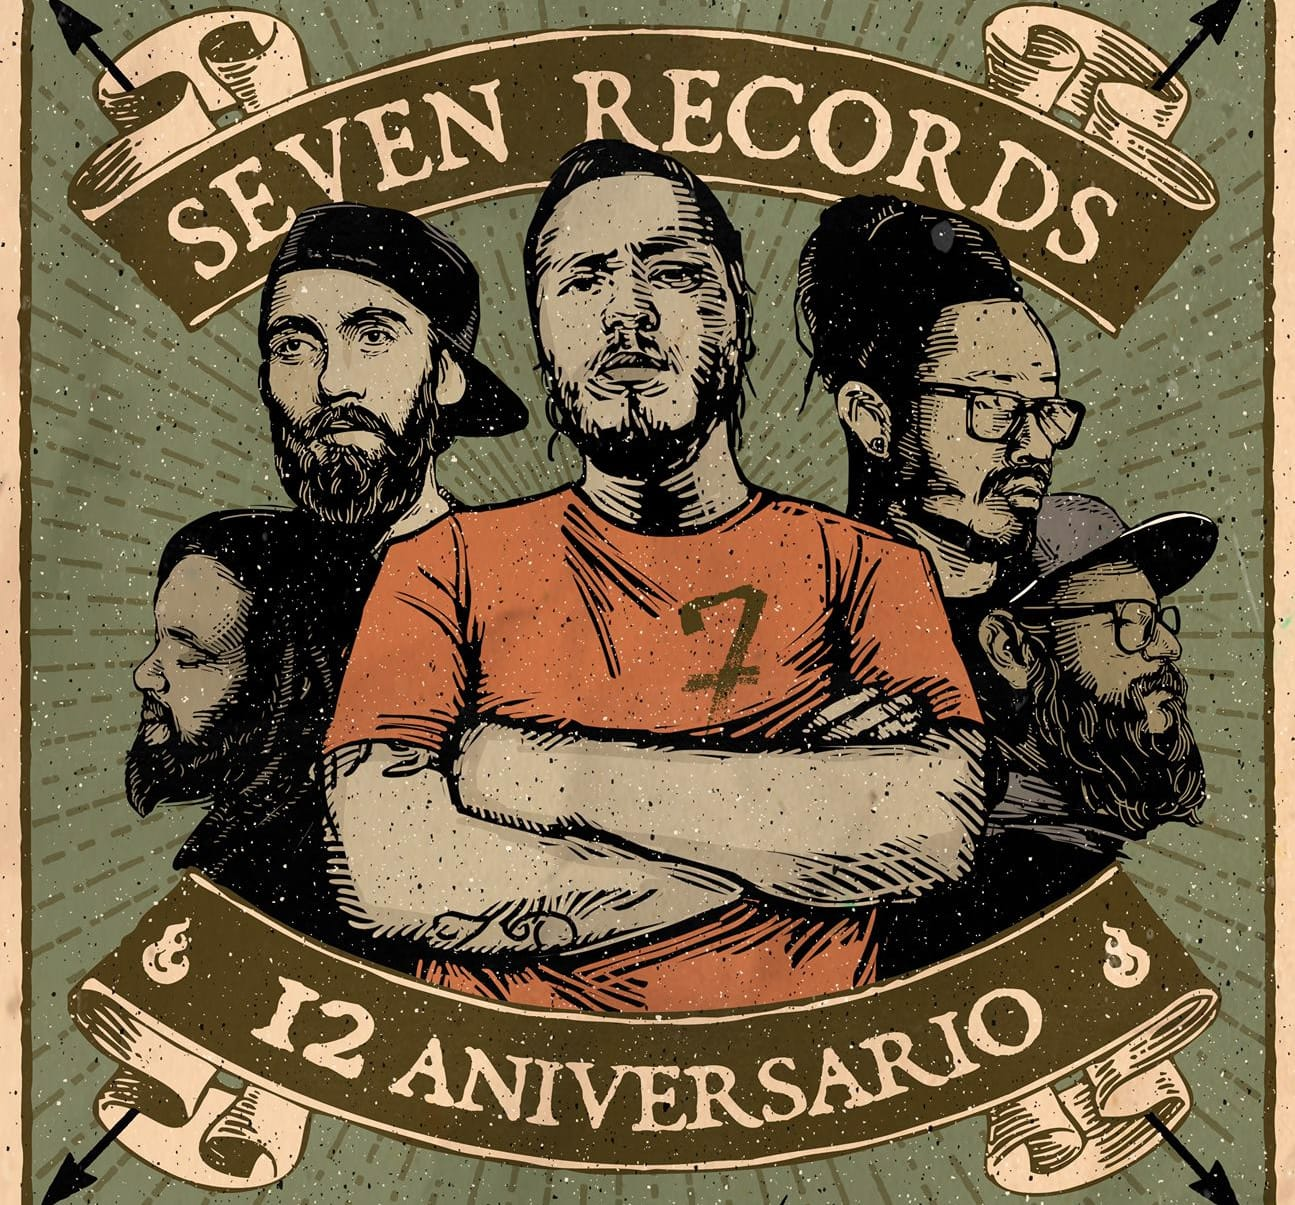 12 ANIVERSARIO 7 RECORDS MEXICO